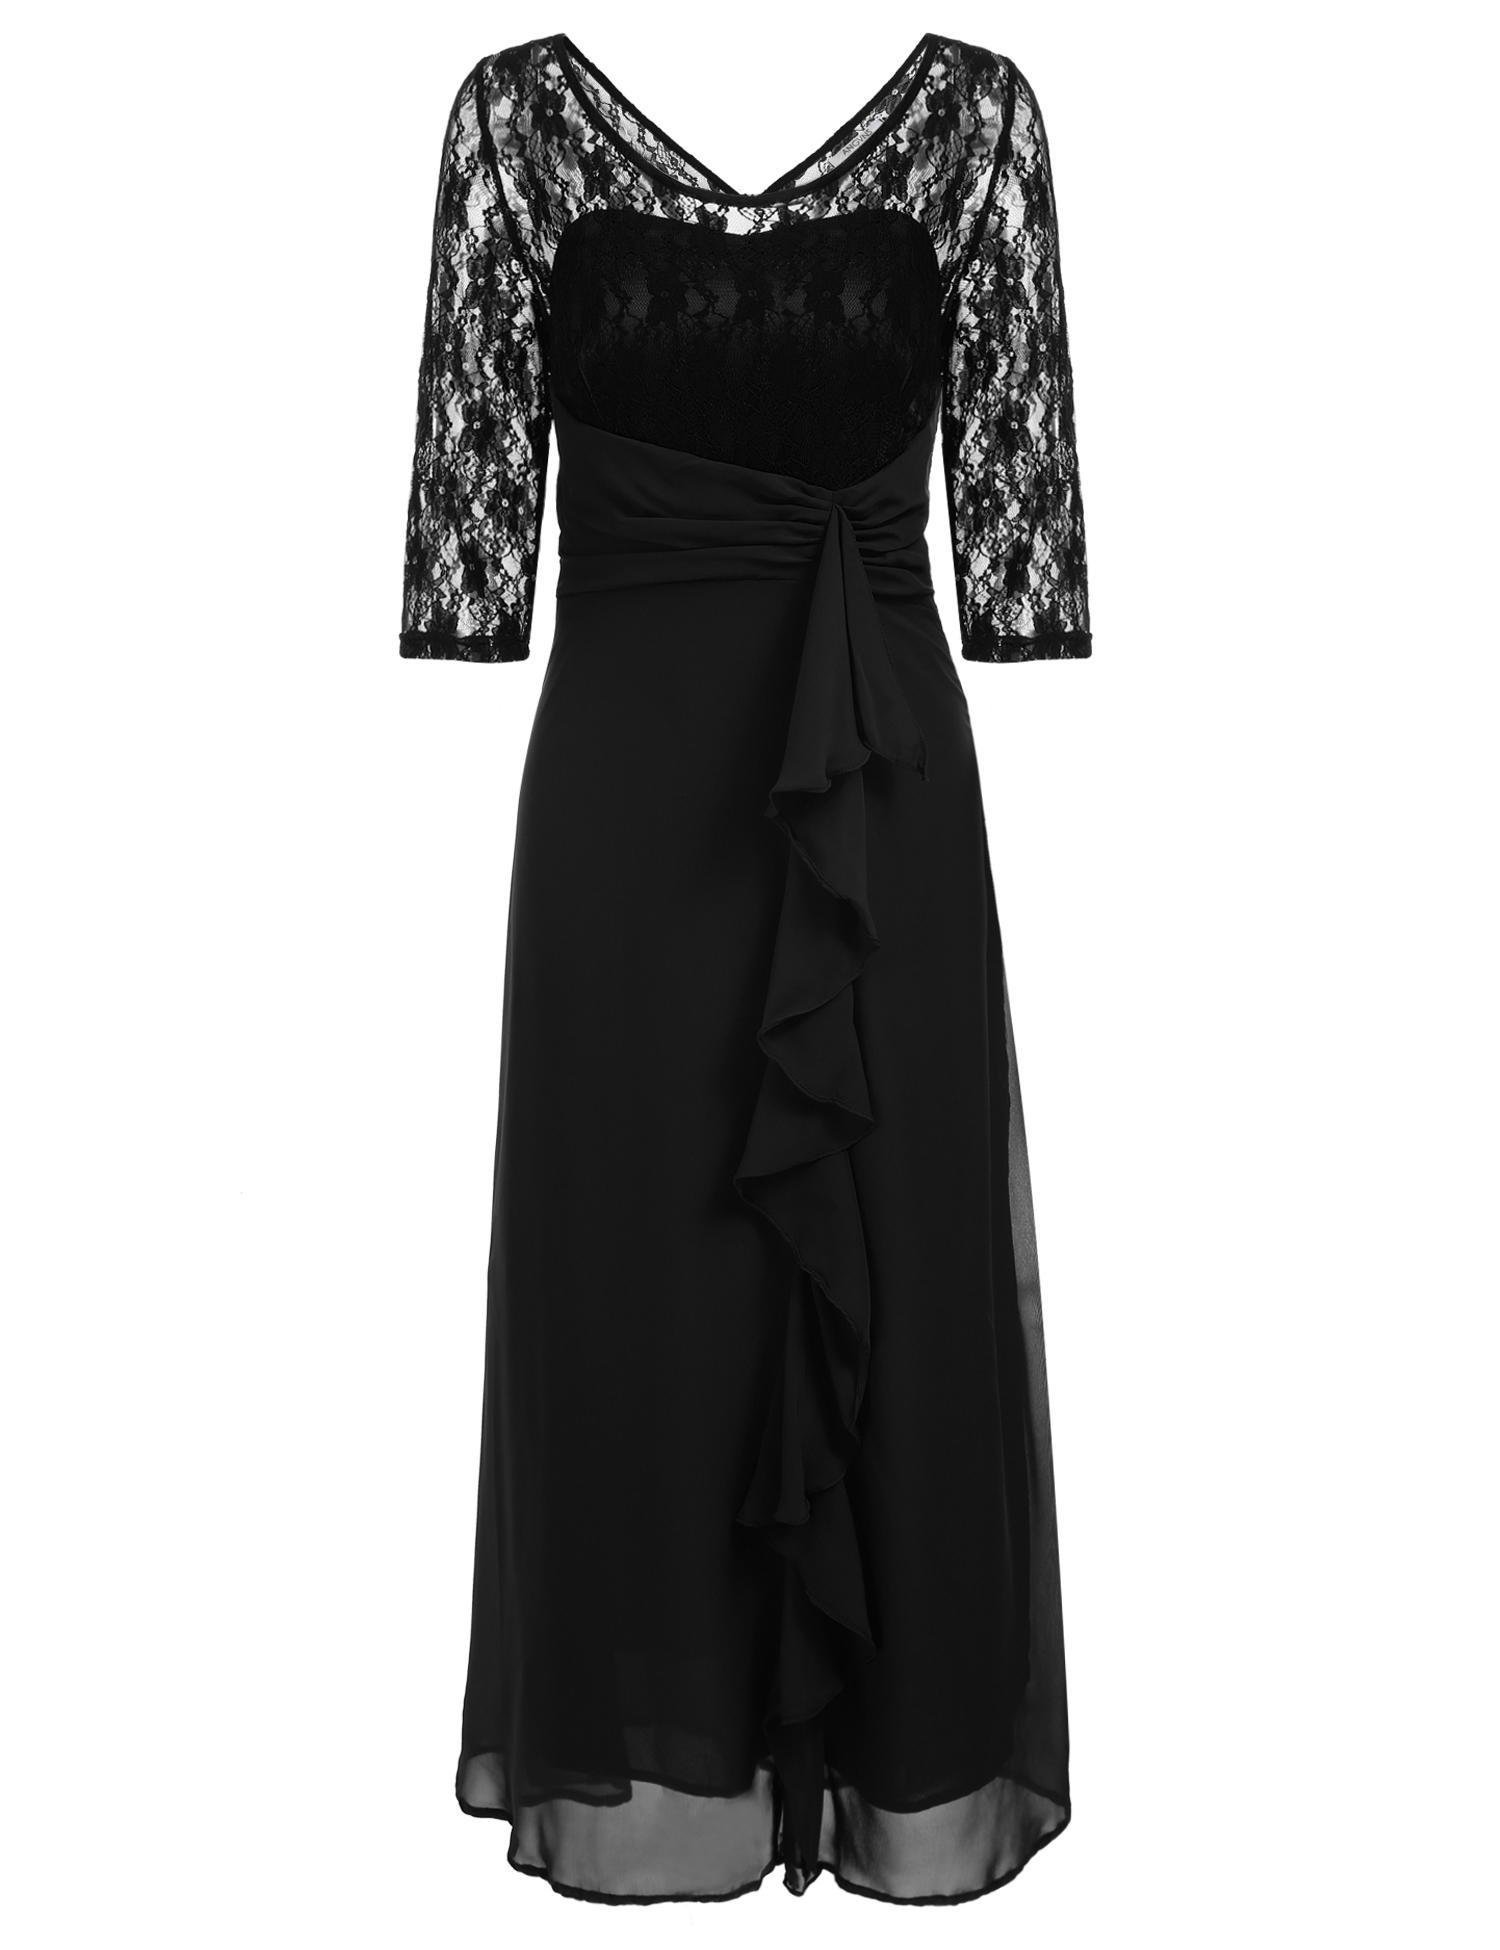 ANGVNS Women's Elegant Round Neck Evening Party Maxi Dress